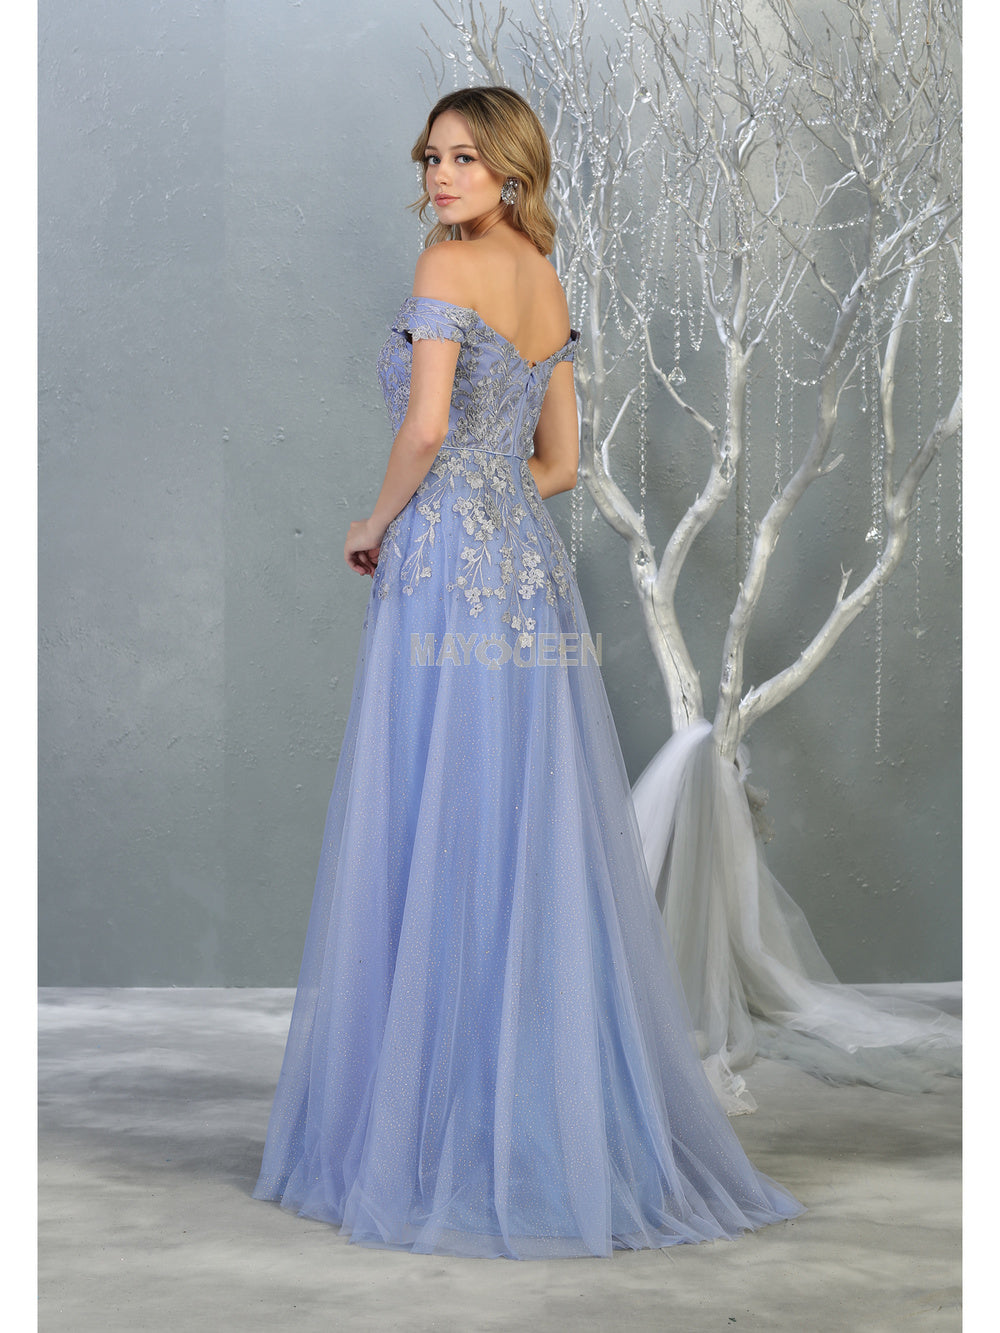 MQ 7850 - Off the Shoulders Ball Gown with 3D Floral Applique Bodice & Tulle Skirt